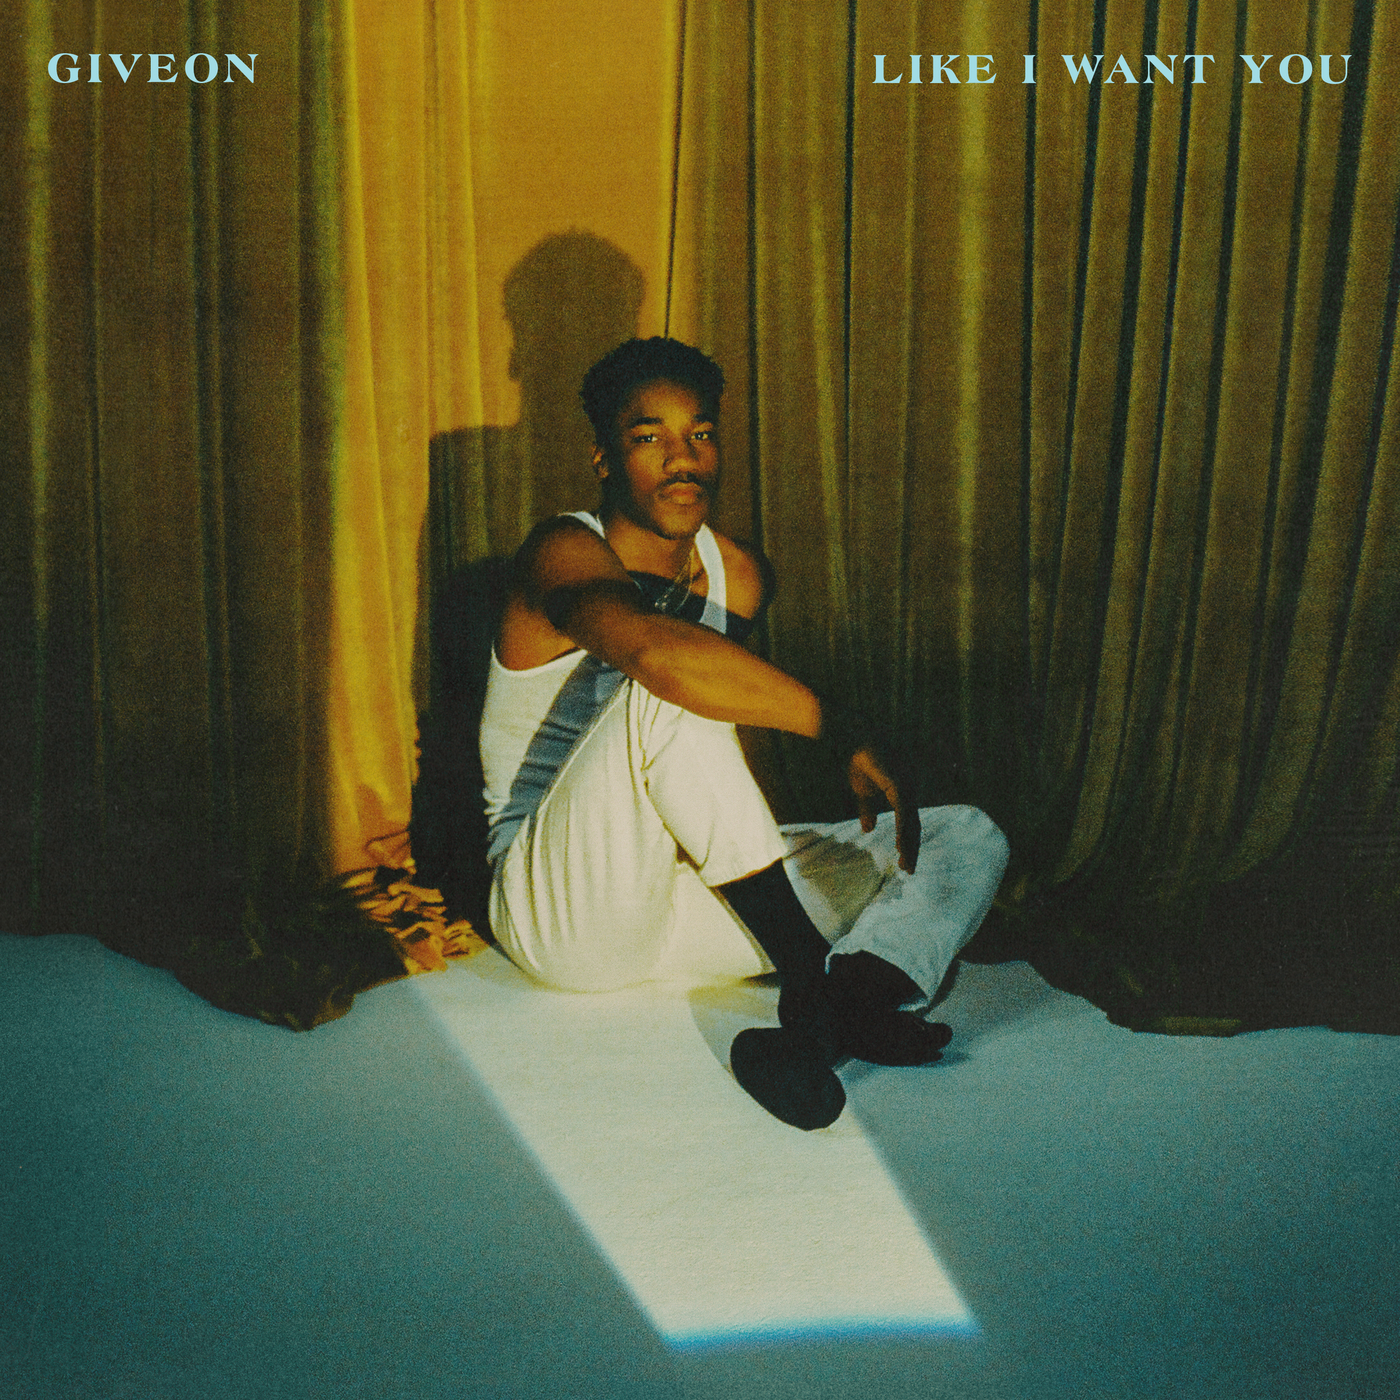 LIKE I WANT YOU - Giveon